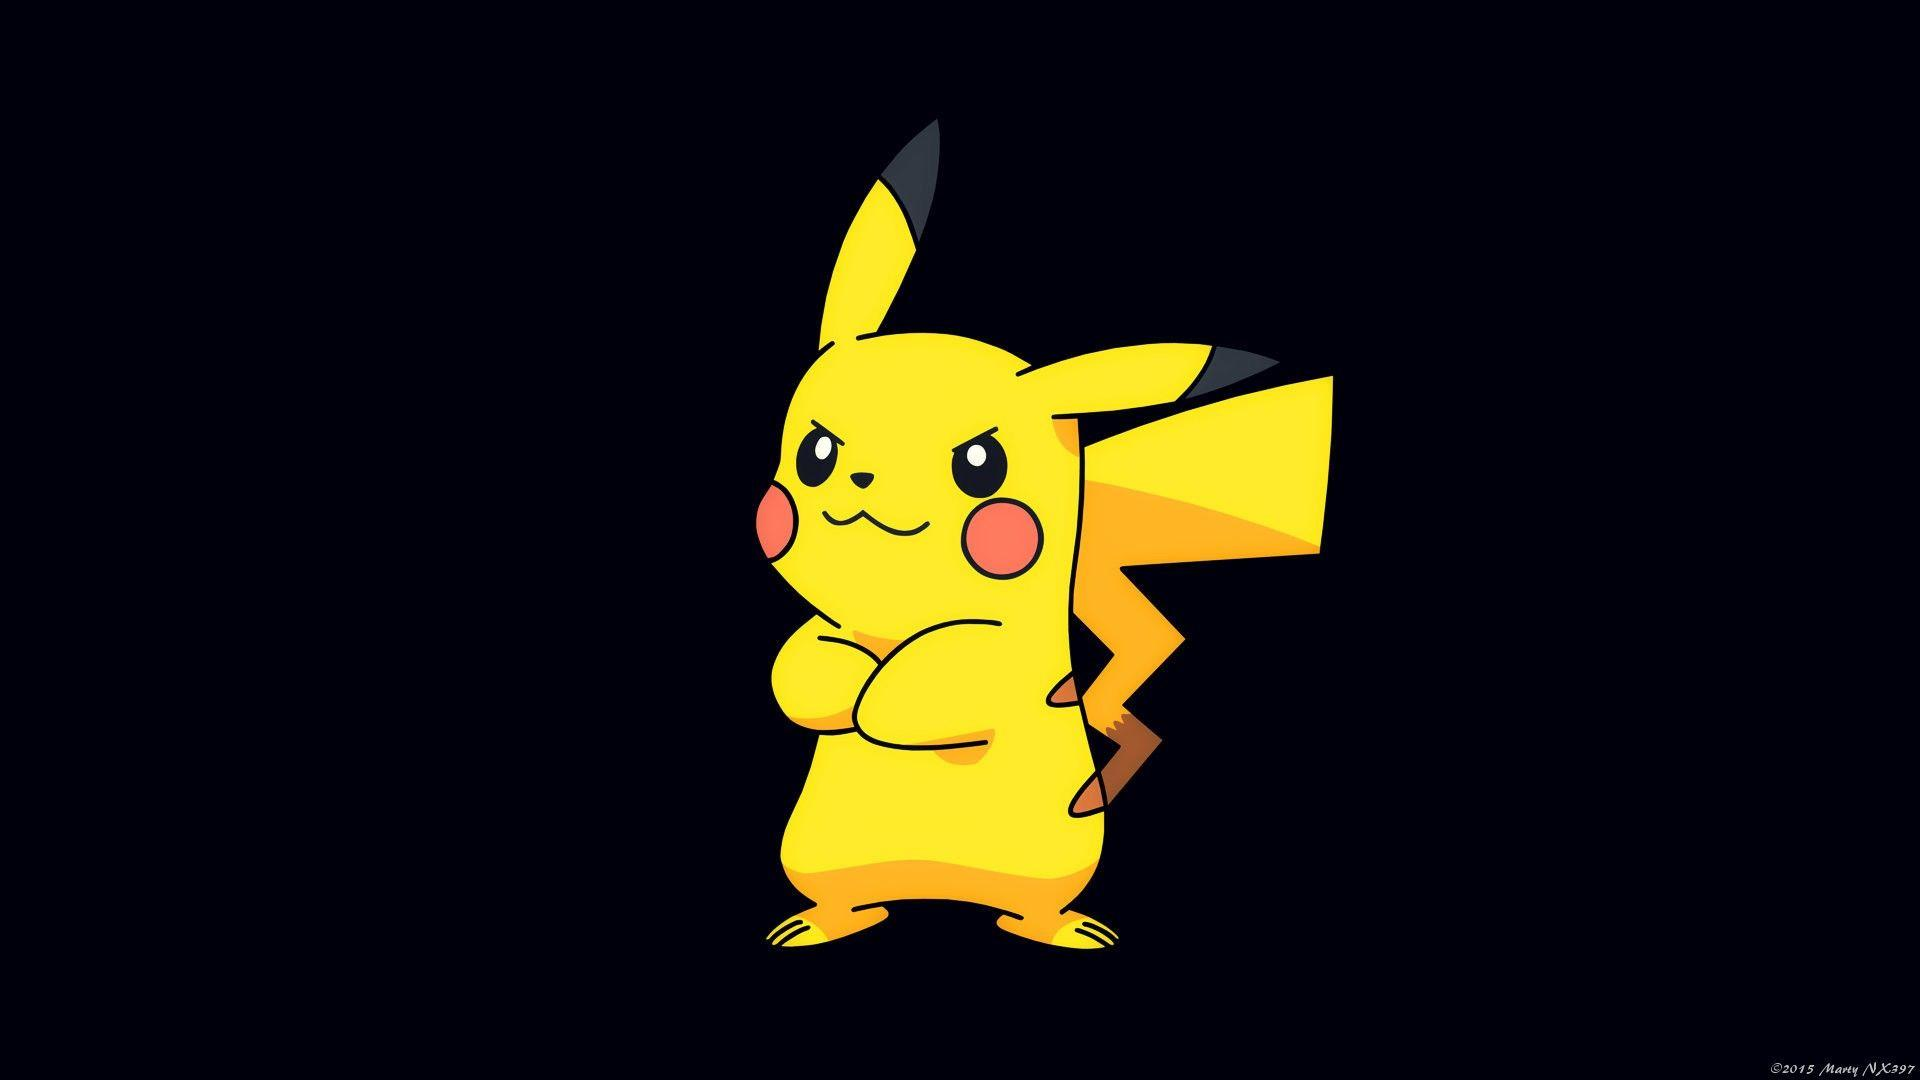 Pikachu Pokémon Wallpapers - Wallpaper Cave Pokemon Wallpaper Hd 1920x1080